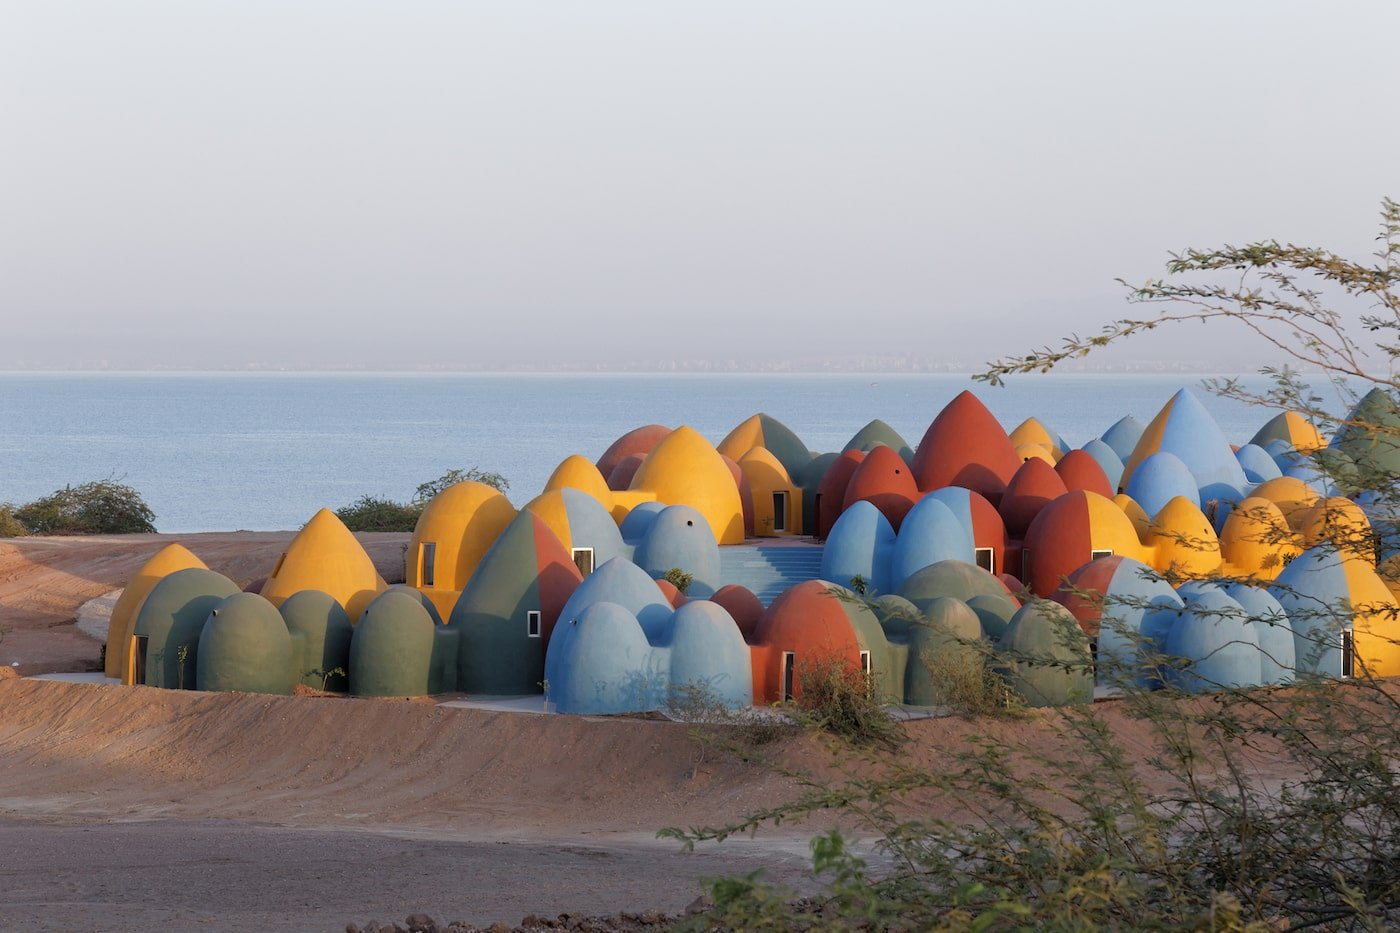 Rammed earth dome village